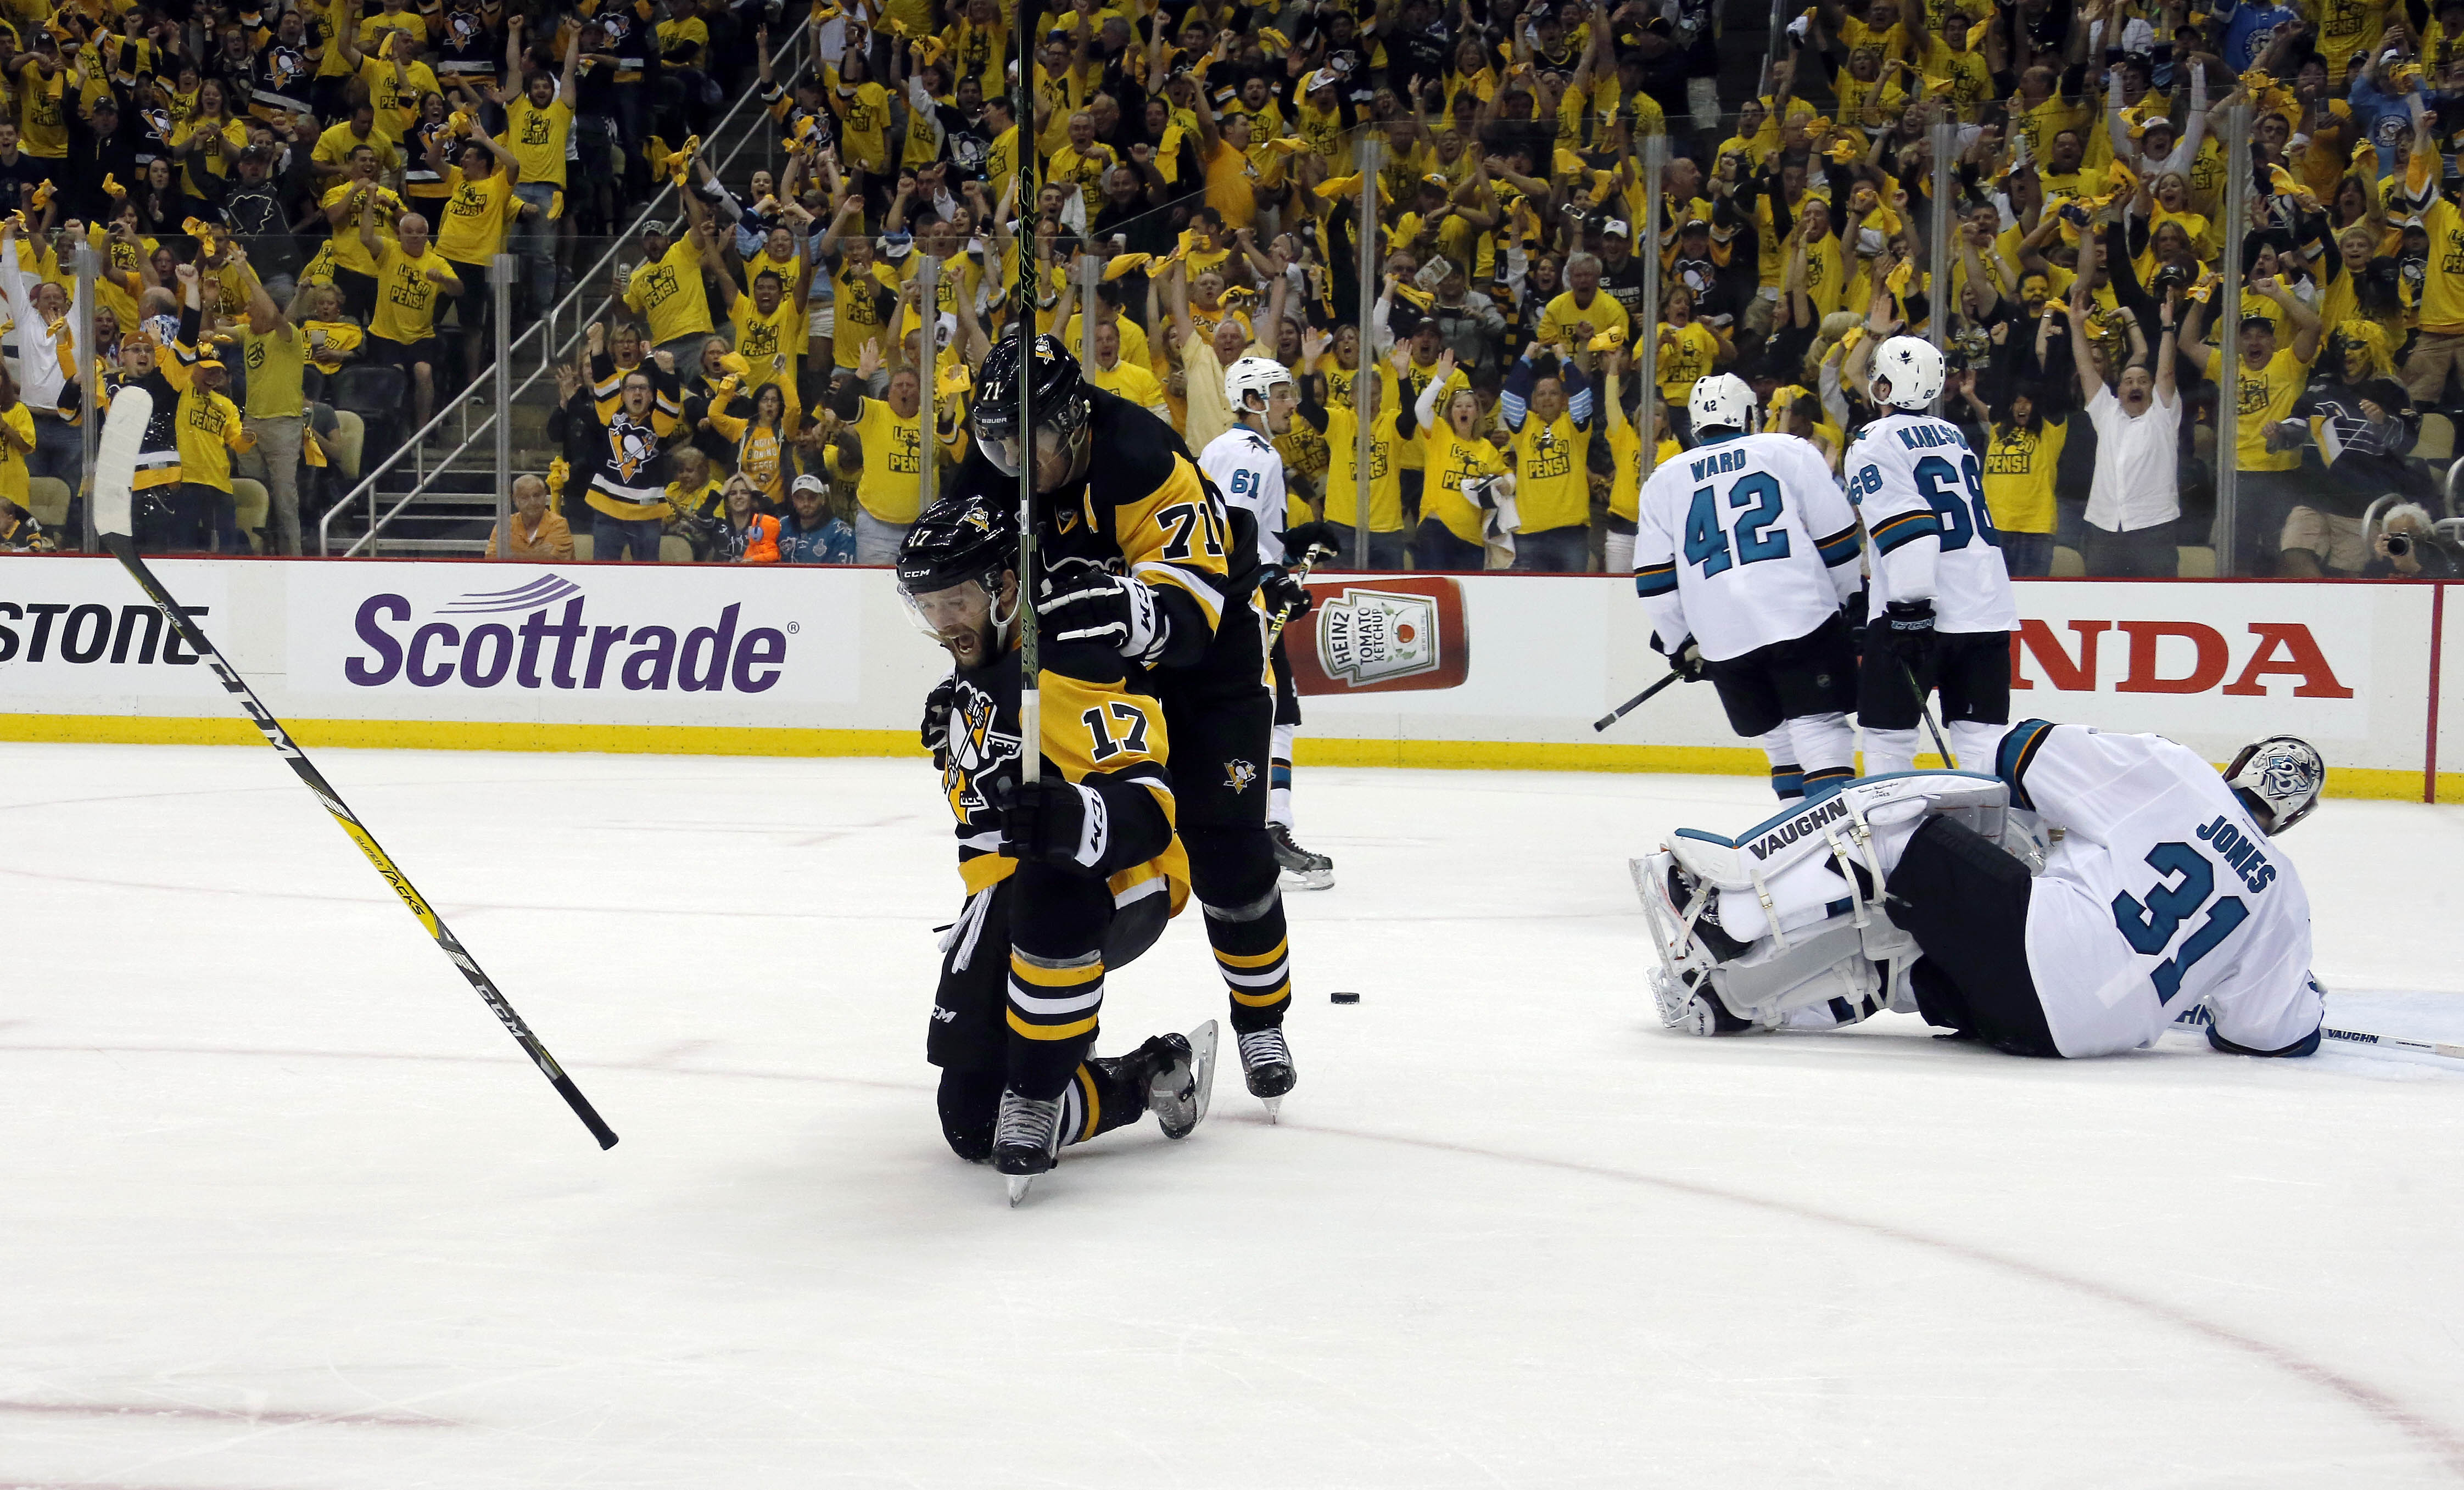 Pittsburgh Penguins' Bryan Rust (17) celebrates with Evgeni Malkin (71) his goal against San Jose Sharks goalie Martin Jones (31) during the first period in Game 1 of the Stanley Cup final series Monday, May 30, 2016, in Pittsburgh. (AP Photo/Keith Srakoc